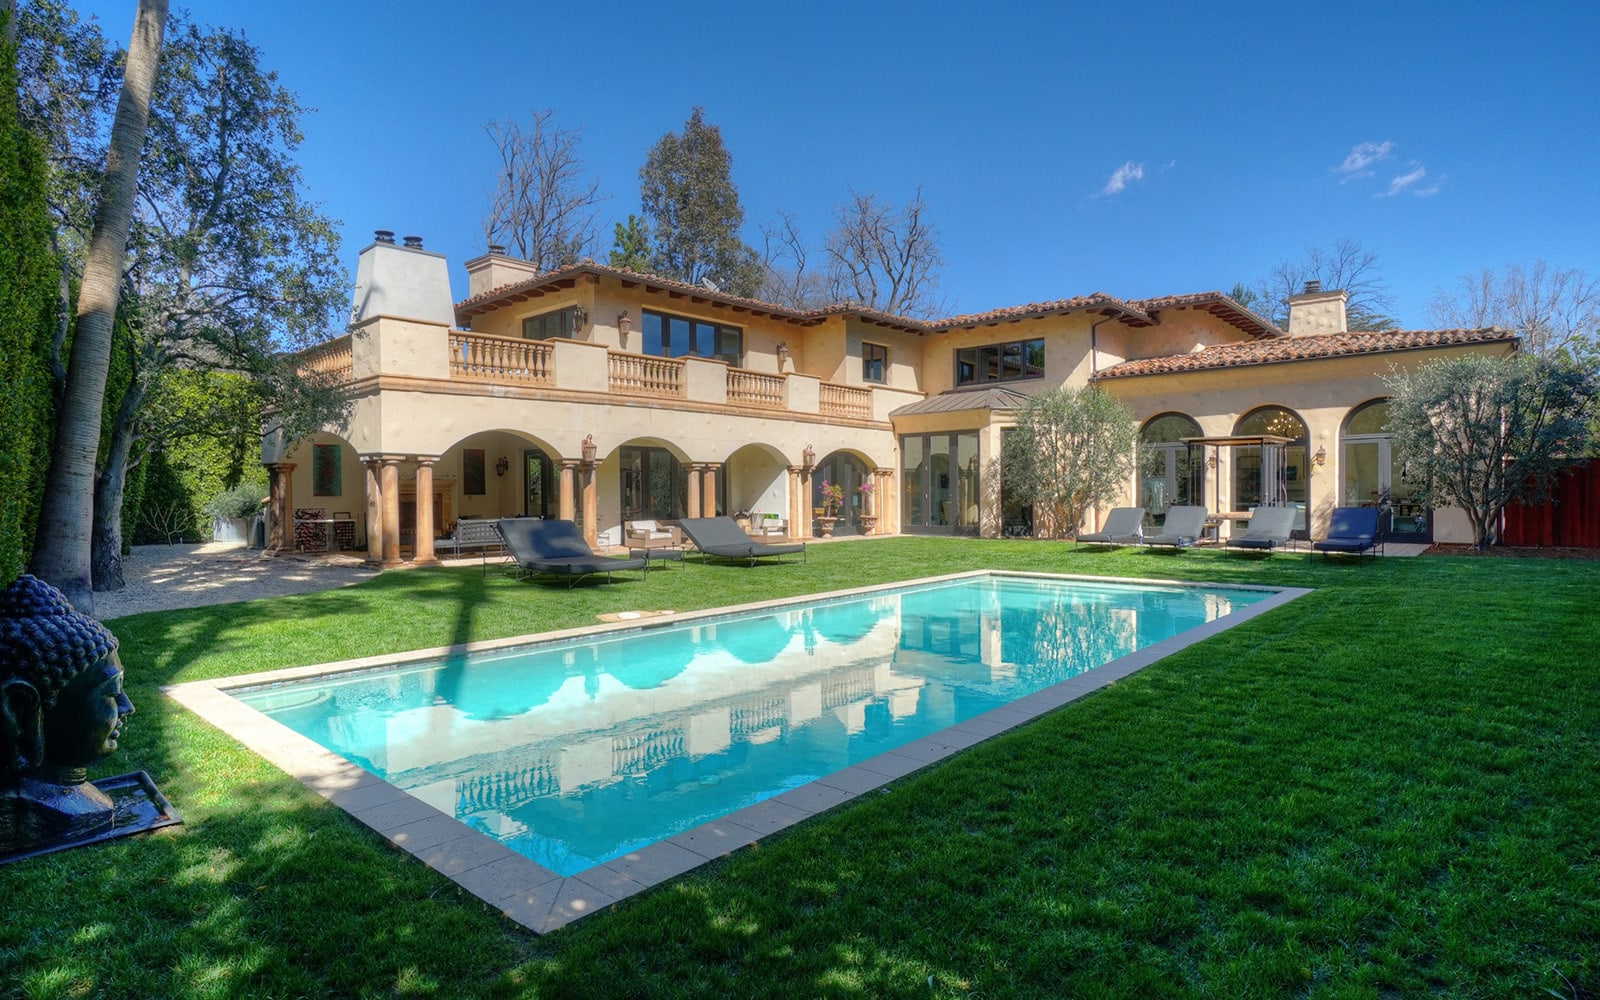 10313 Woodbridge St: a luxury home for sale in Toluca Lake ...